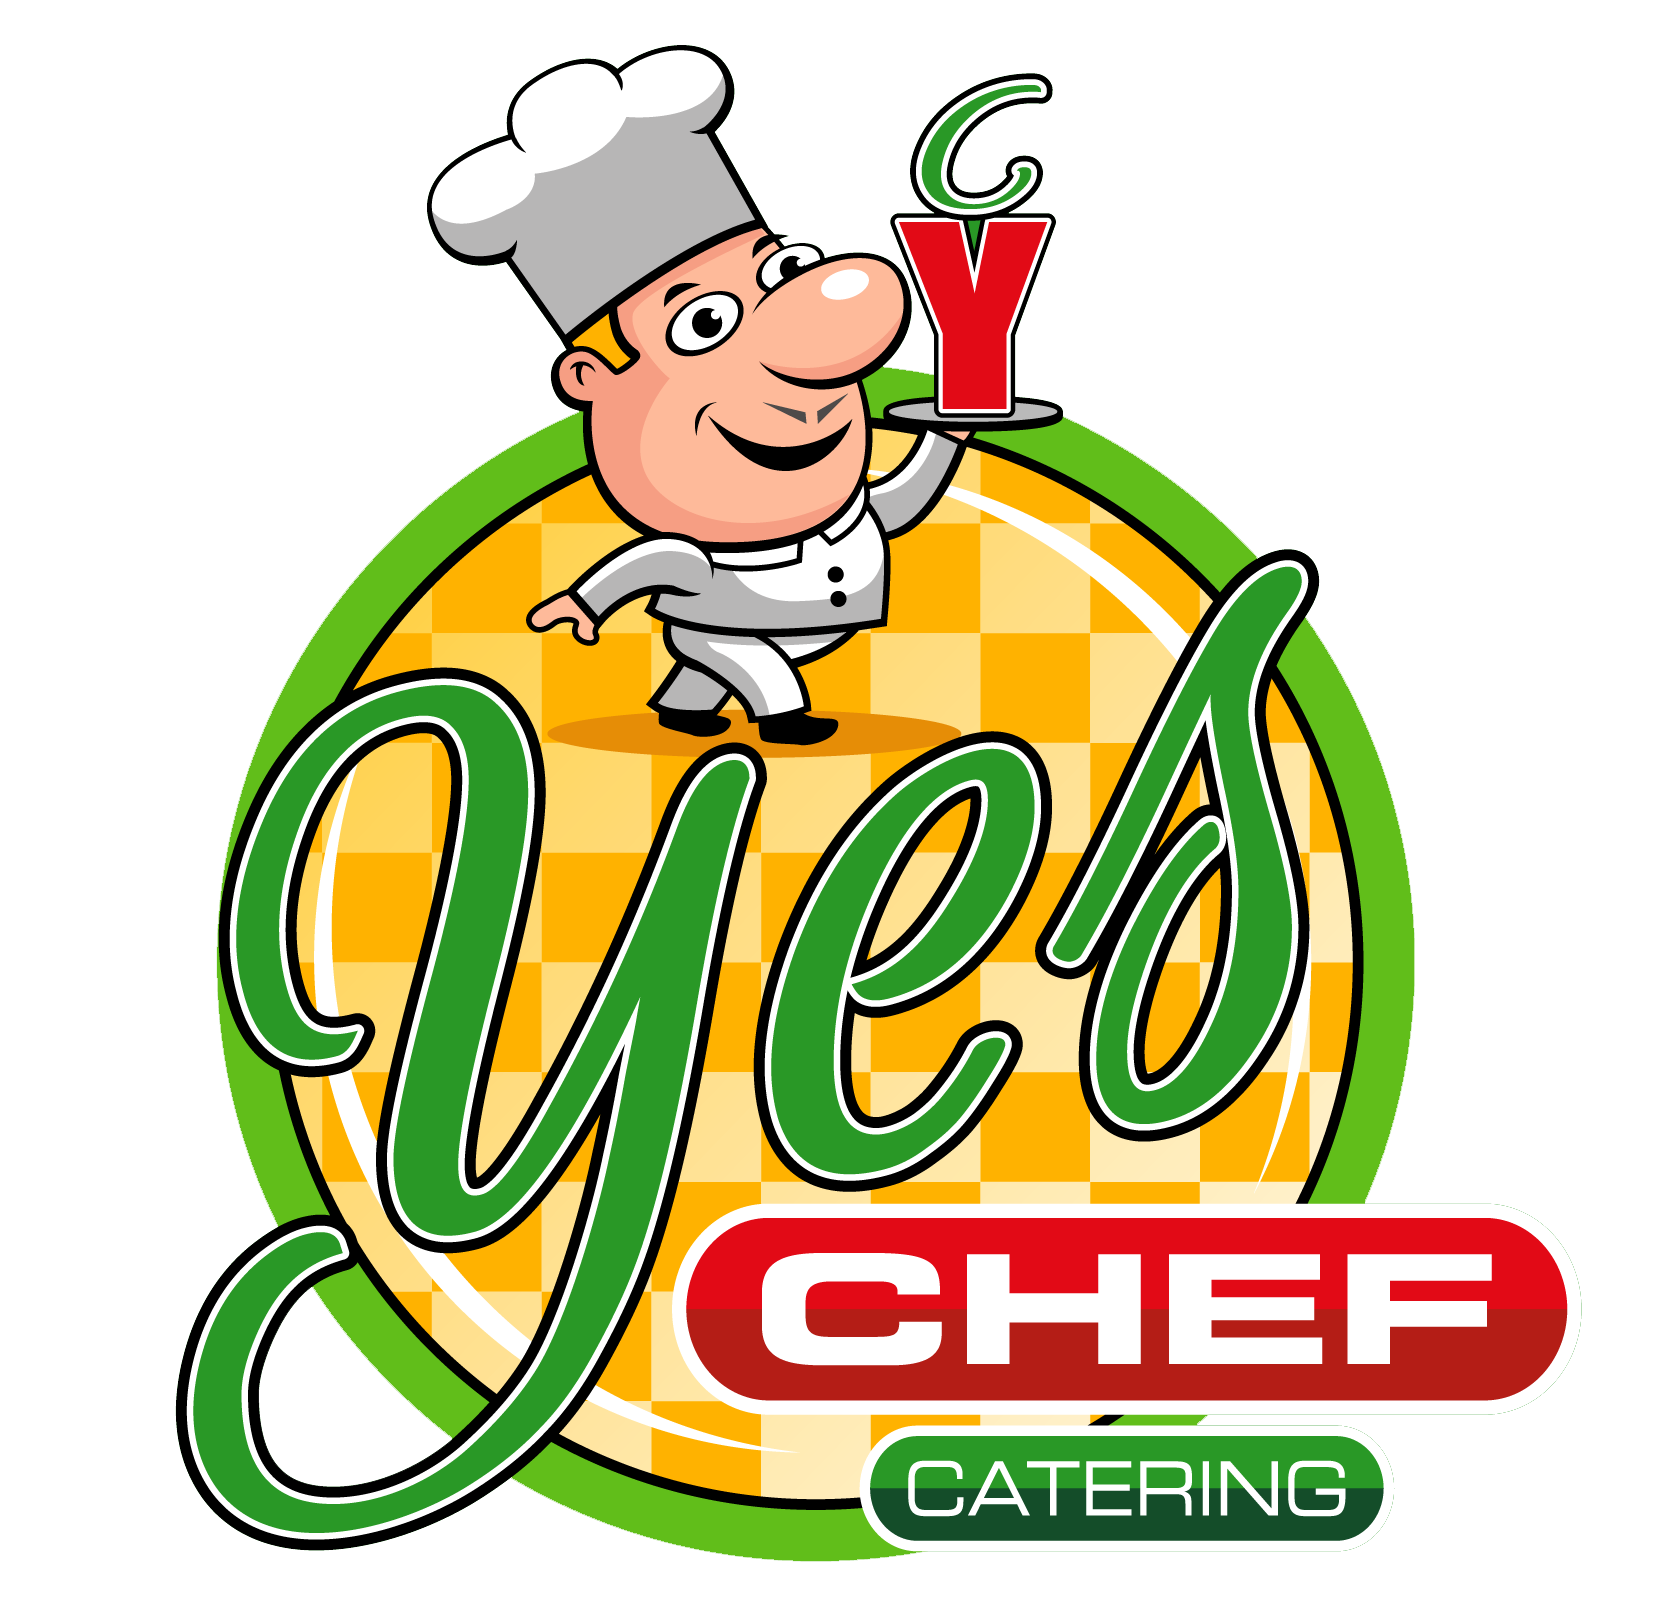 graphic transparent Yes outside specialists. Catering clipart kitchen chef.